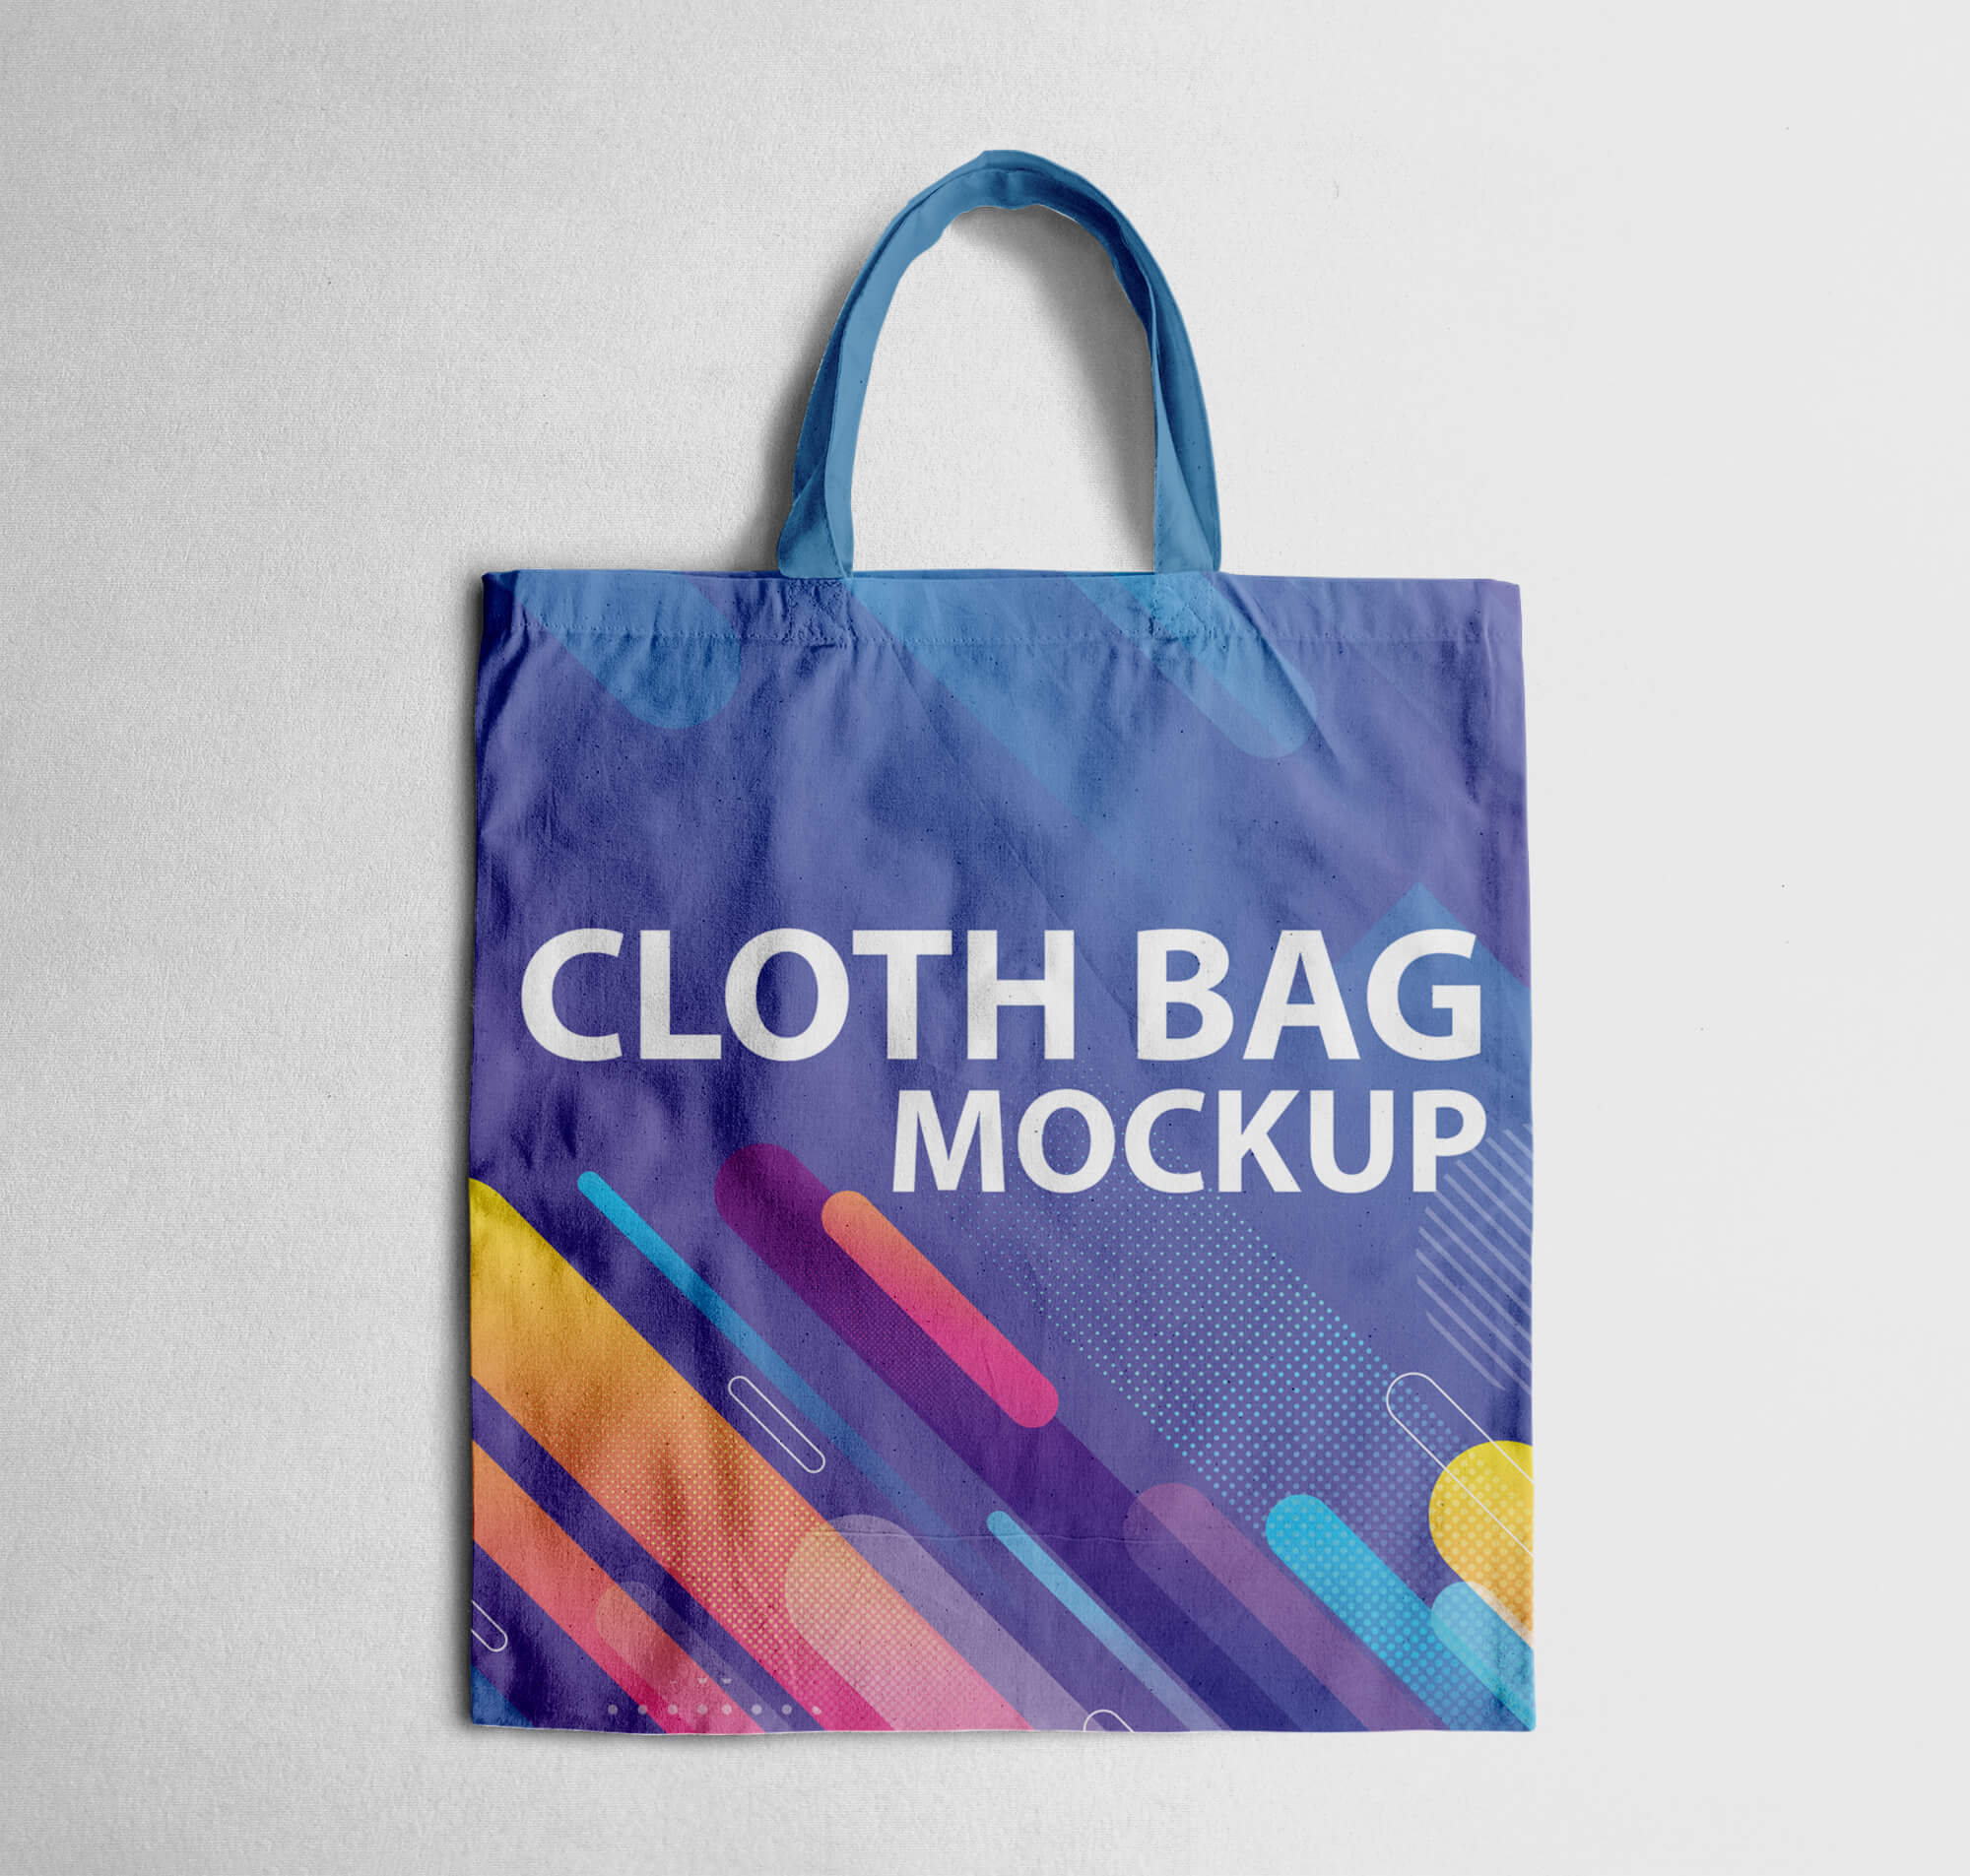 Design Free Cloth Bag Mockup PSD Template